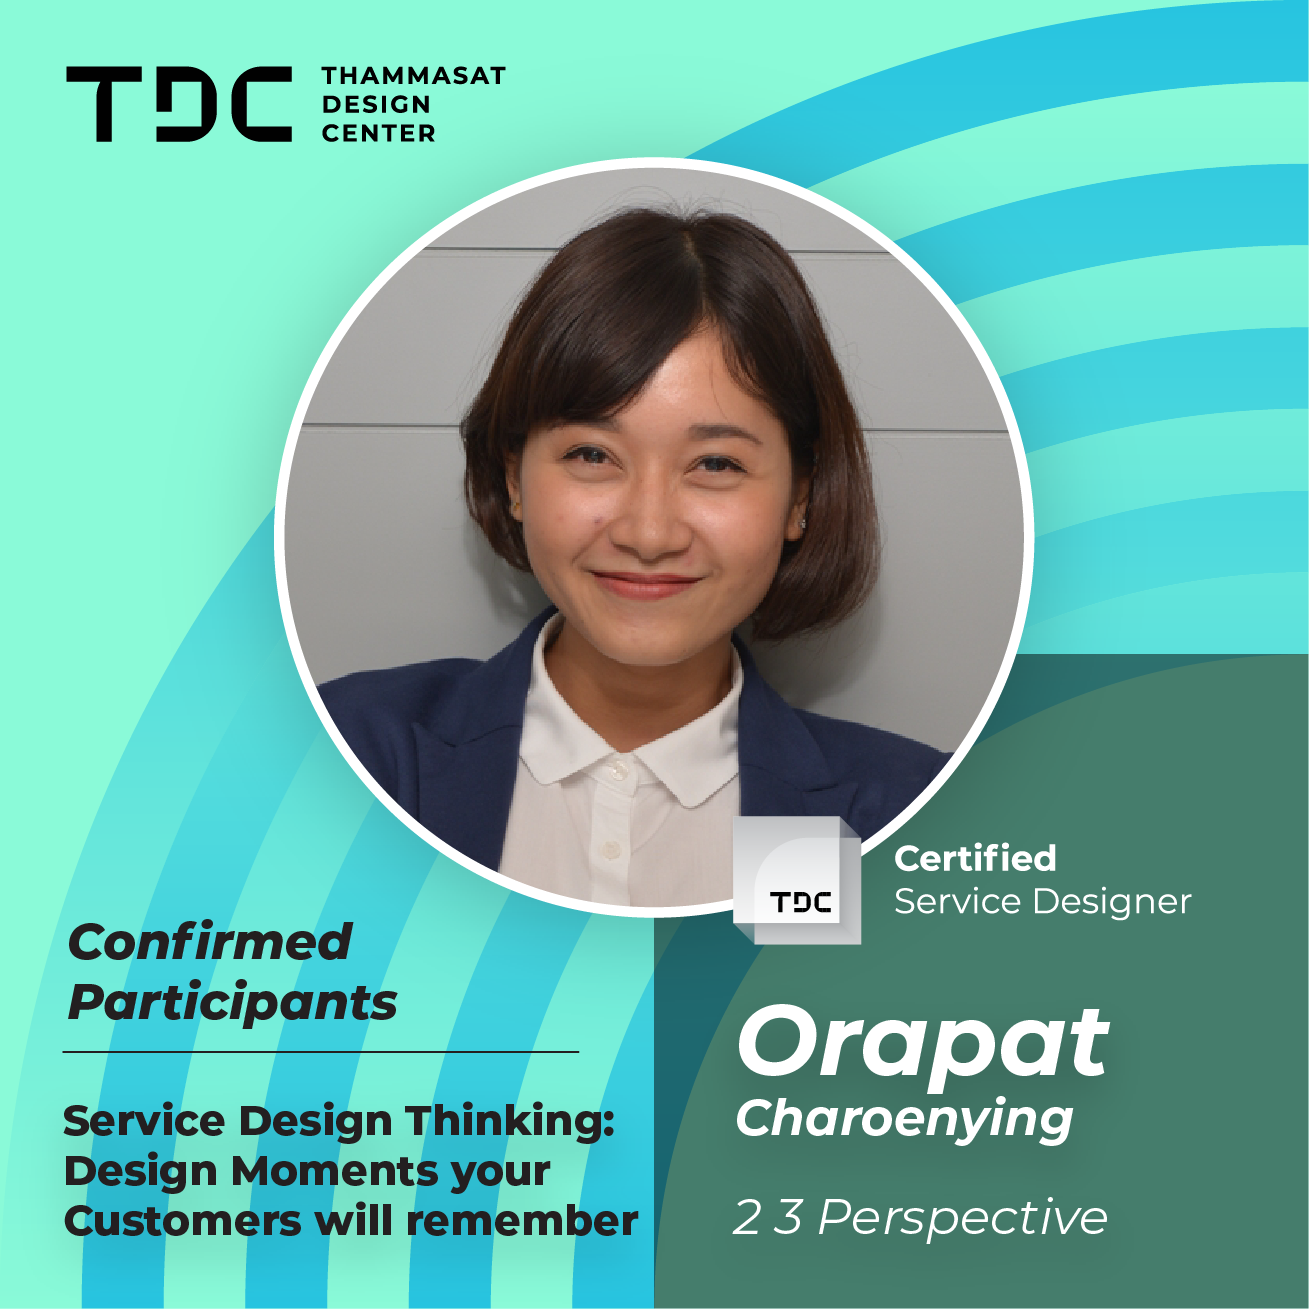 TDC Service Design [1] - Confirmed Participants-06